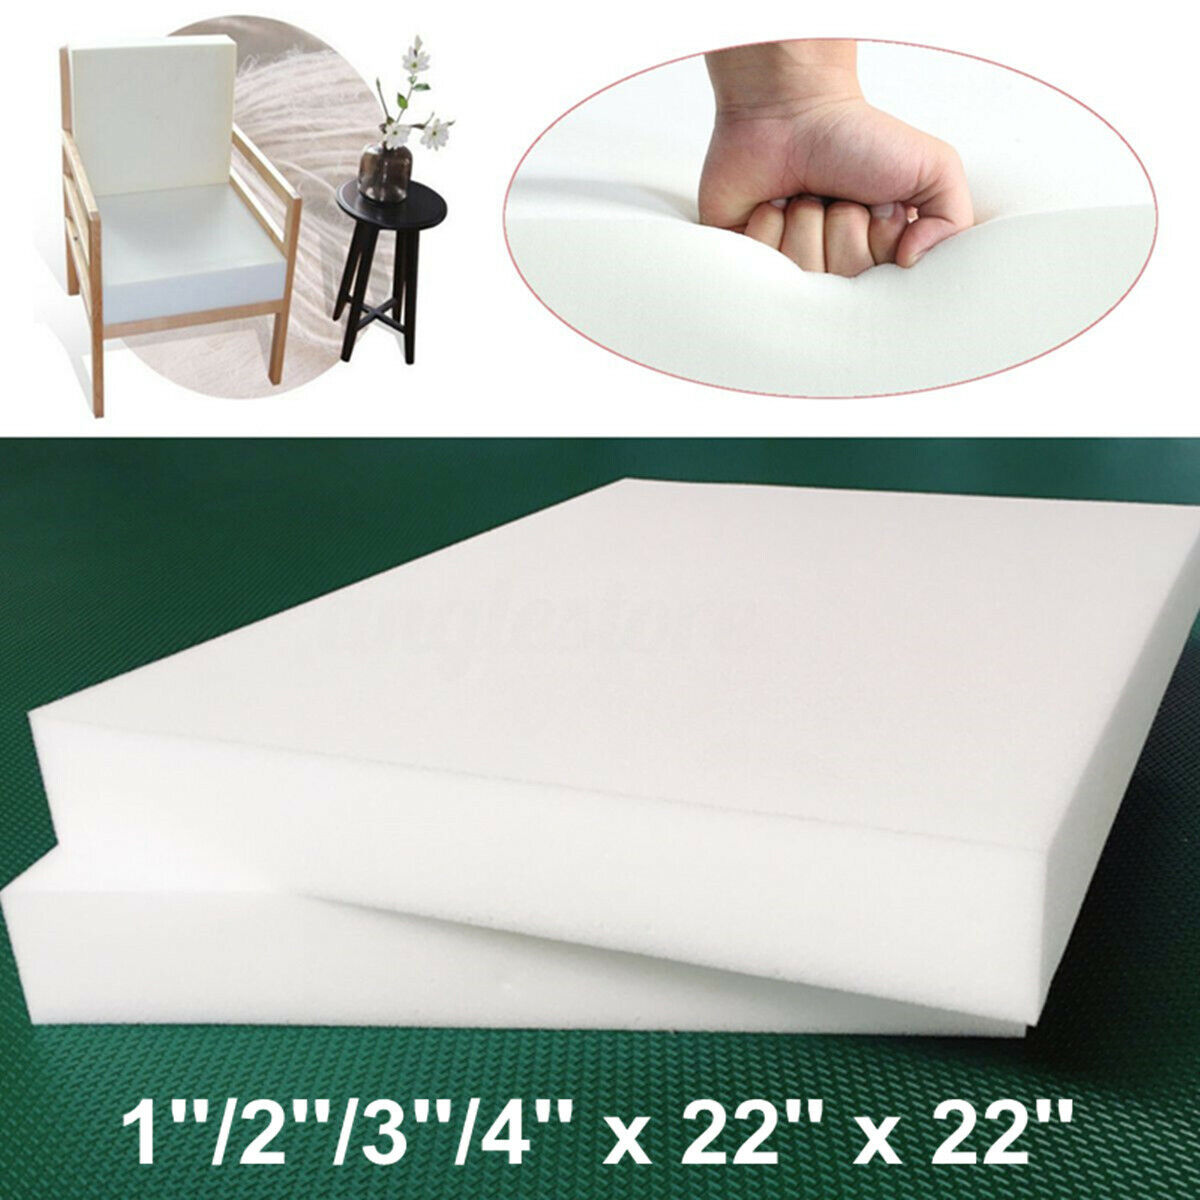 "22""x22"" High Density Seat Foam Rubber Cushion Replacement Upholstery Firm Crafting Pieces"